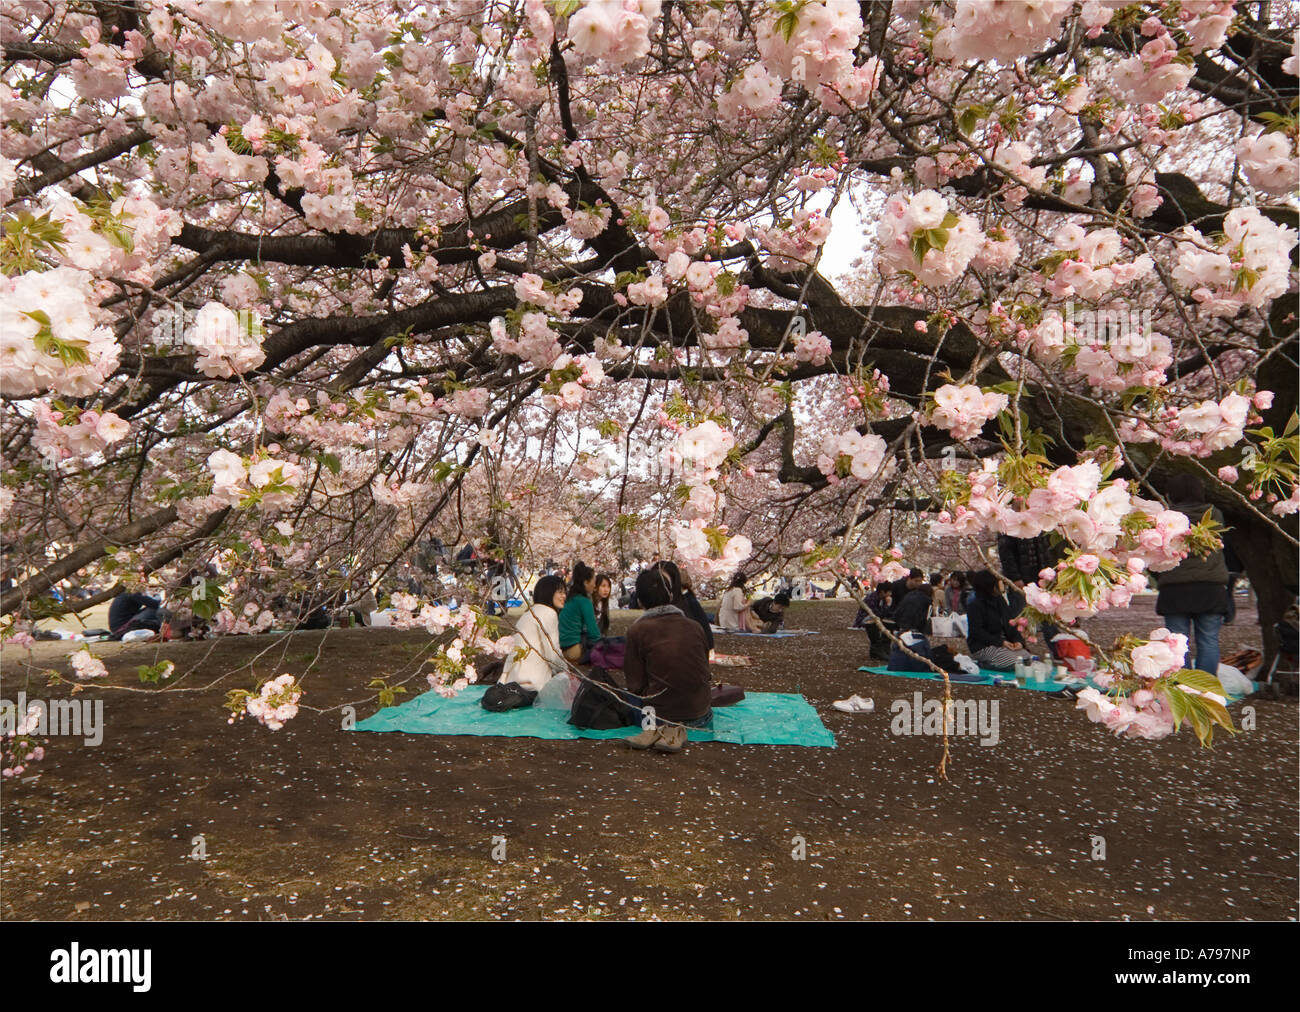 People Having A Picnic Under Cherry Blossom Trees In Tokyo Japan